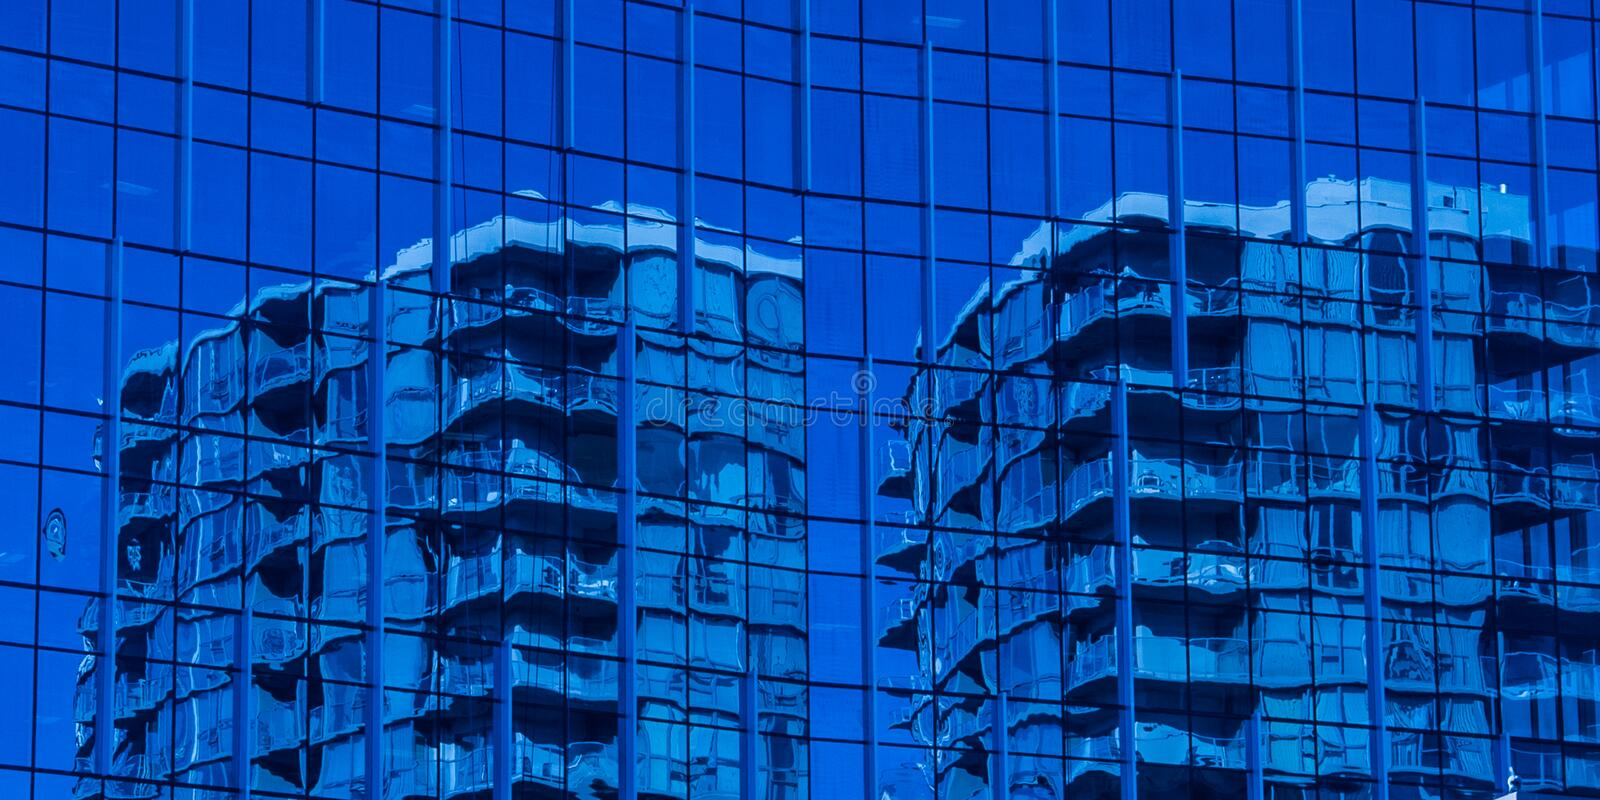 Blue coloured building reflecting off of blue glass royalty free stock photo